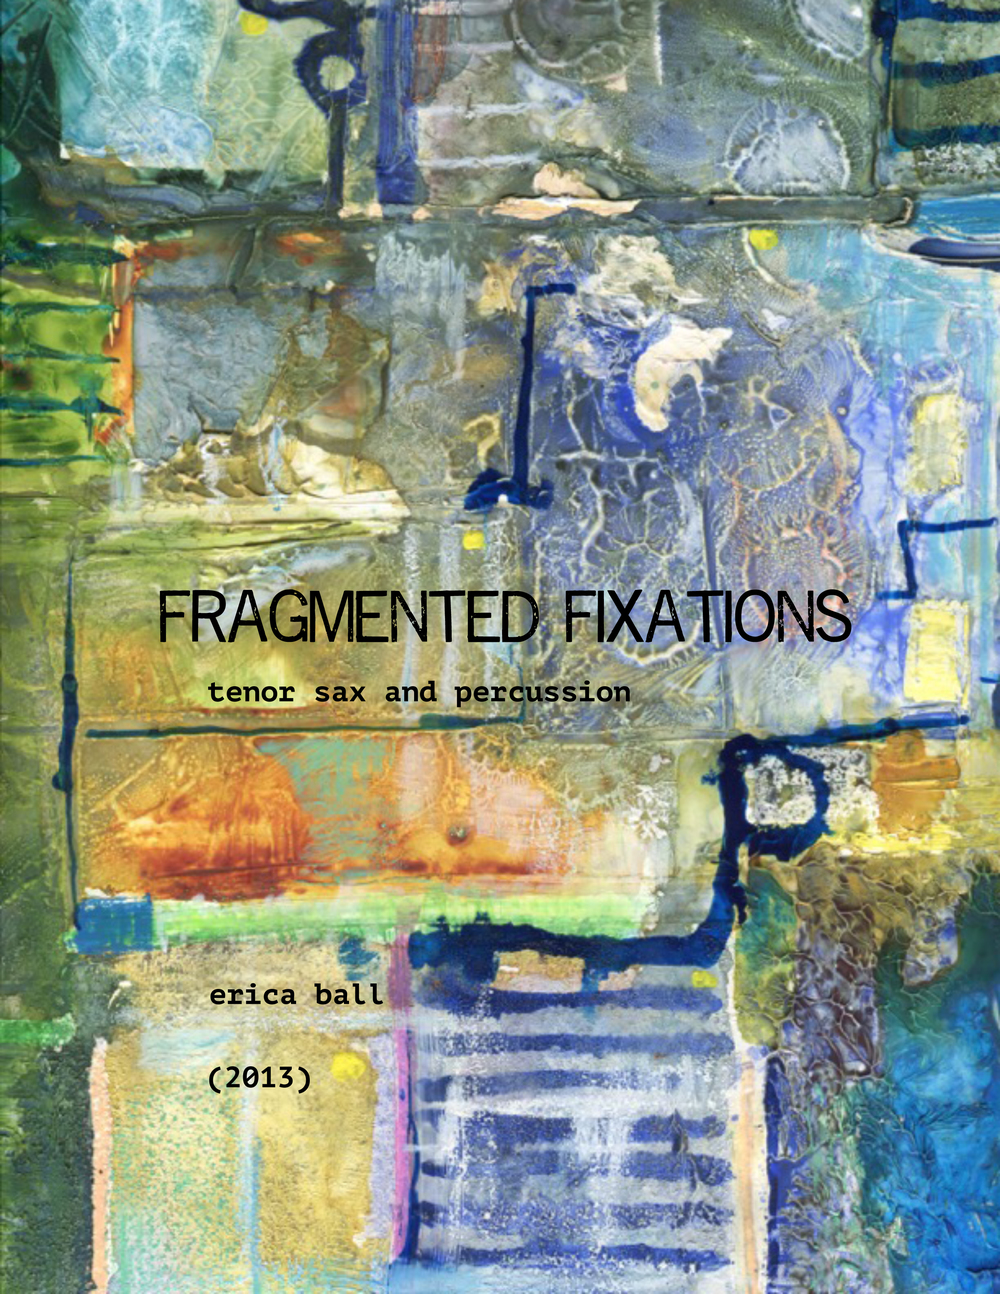 fragmented fixations  - for tenor saxophone and percussion